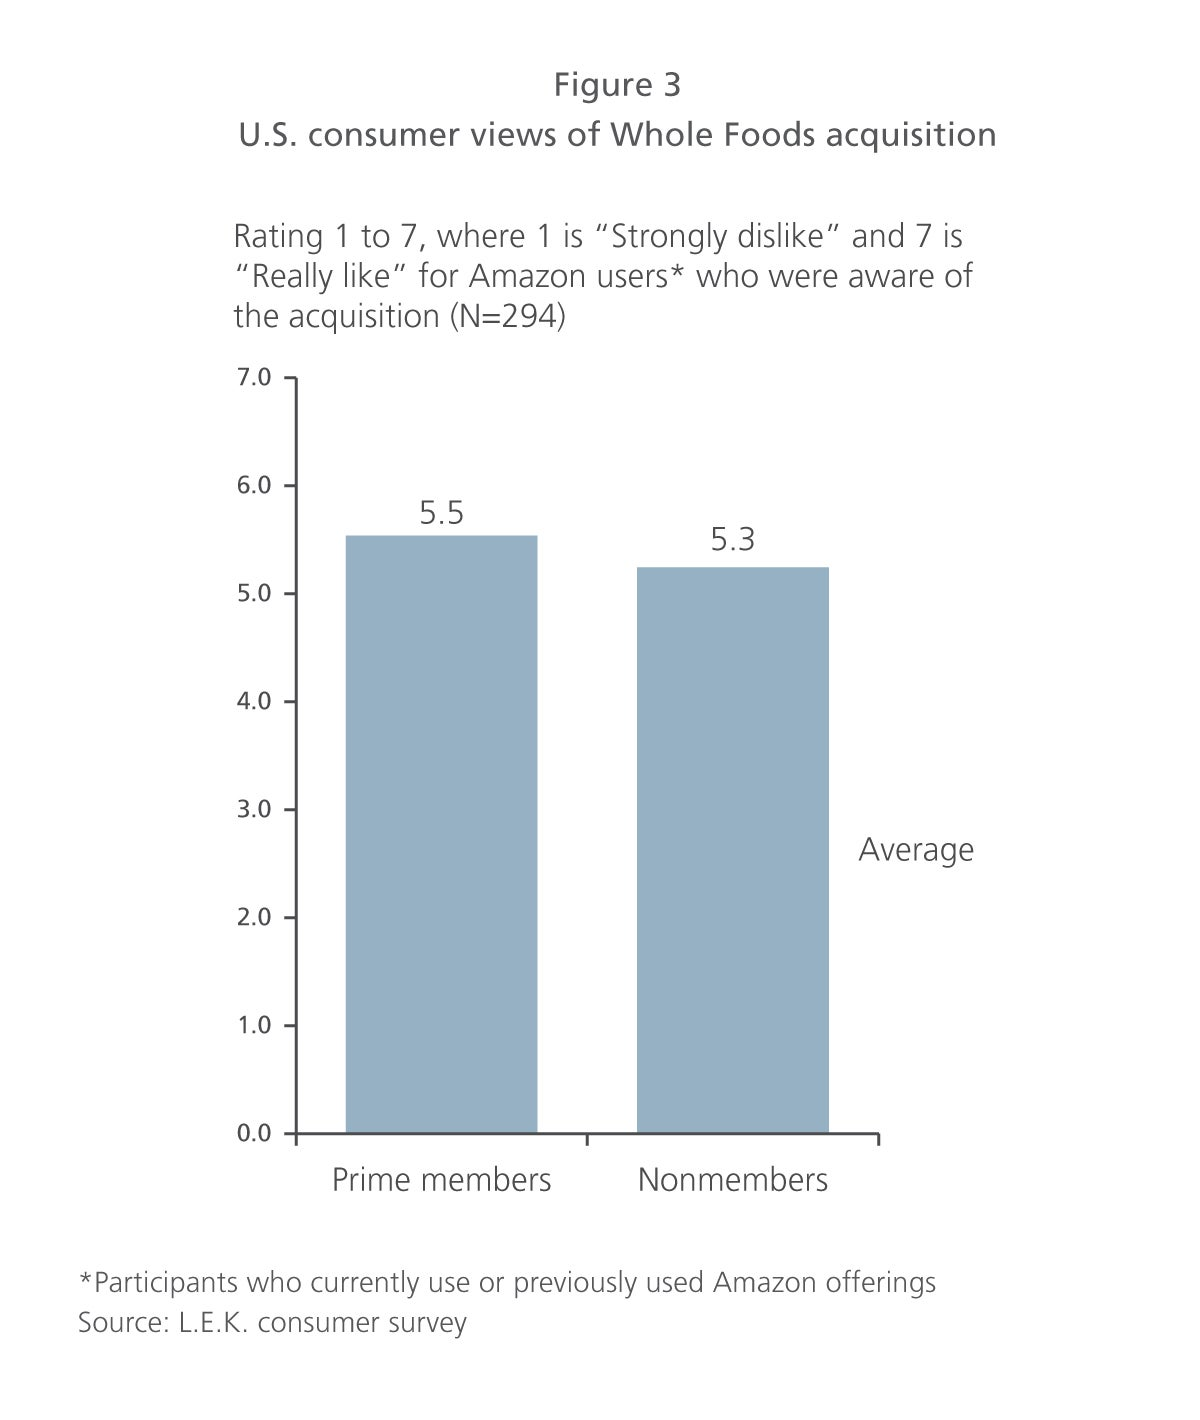 U.S. consumer views of Whole Foods acquisition